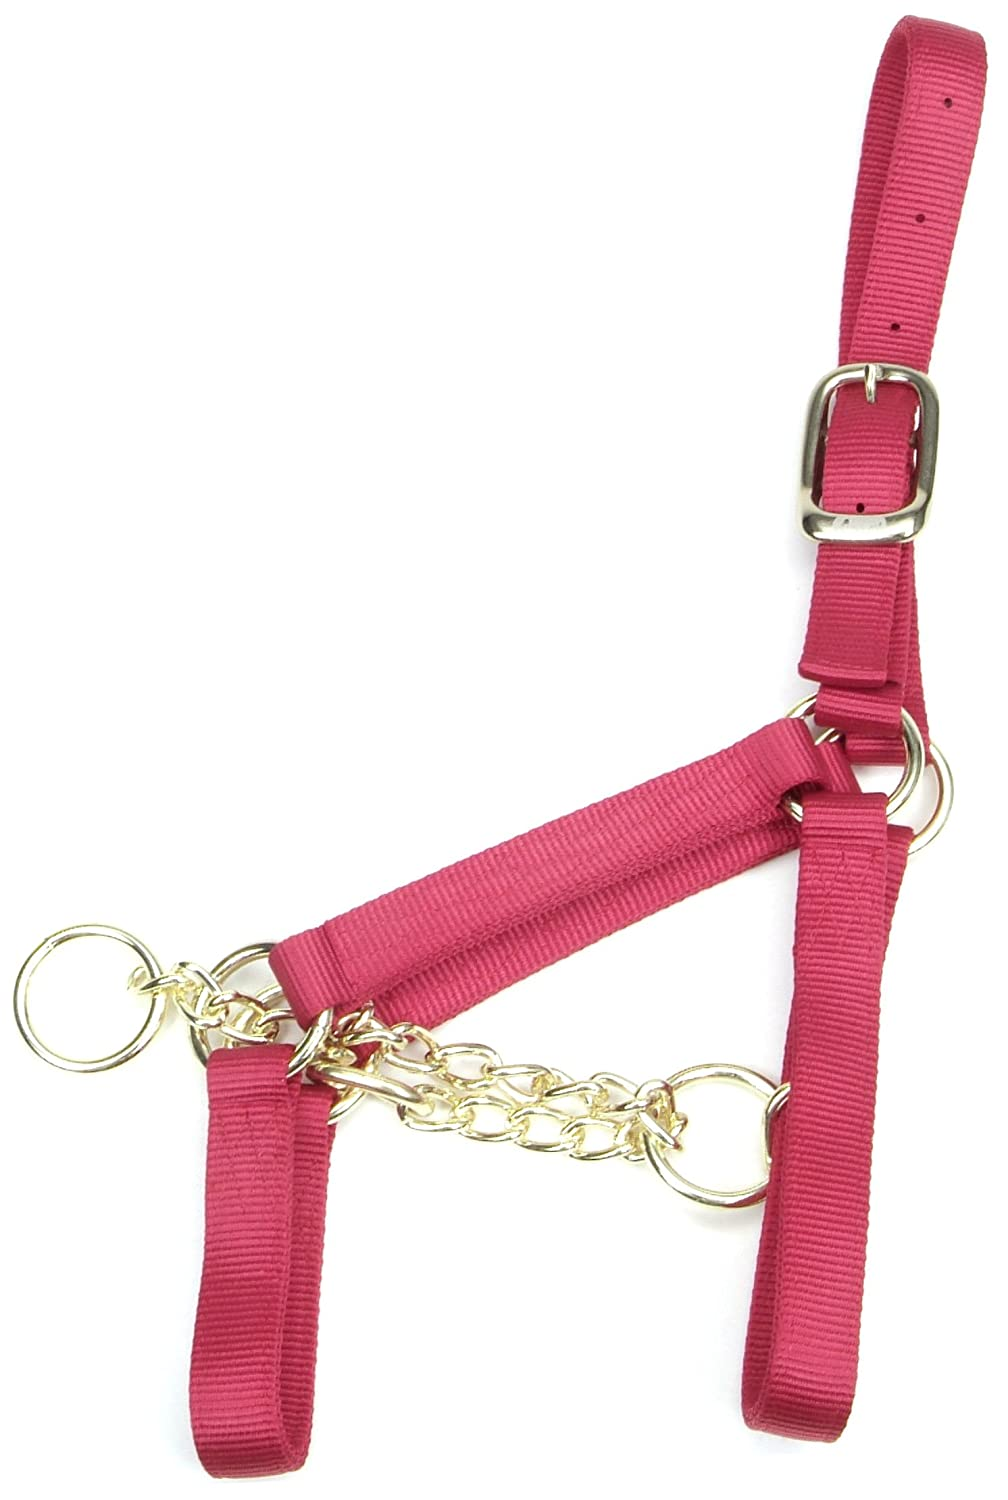 Accent 2.5cm wide Control Halter for Yearlings, 230-360kg, Red